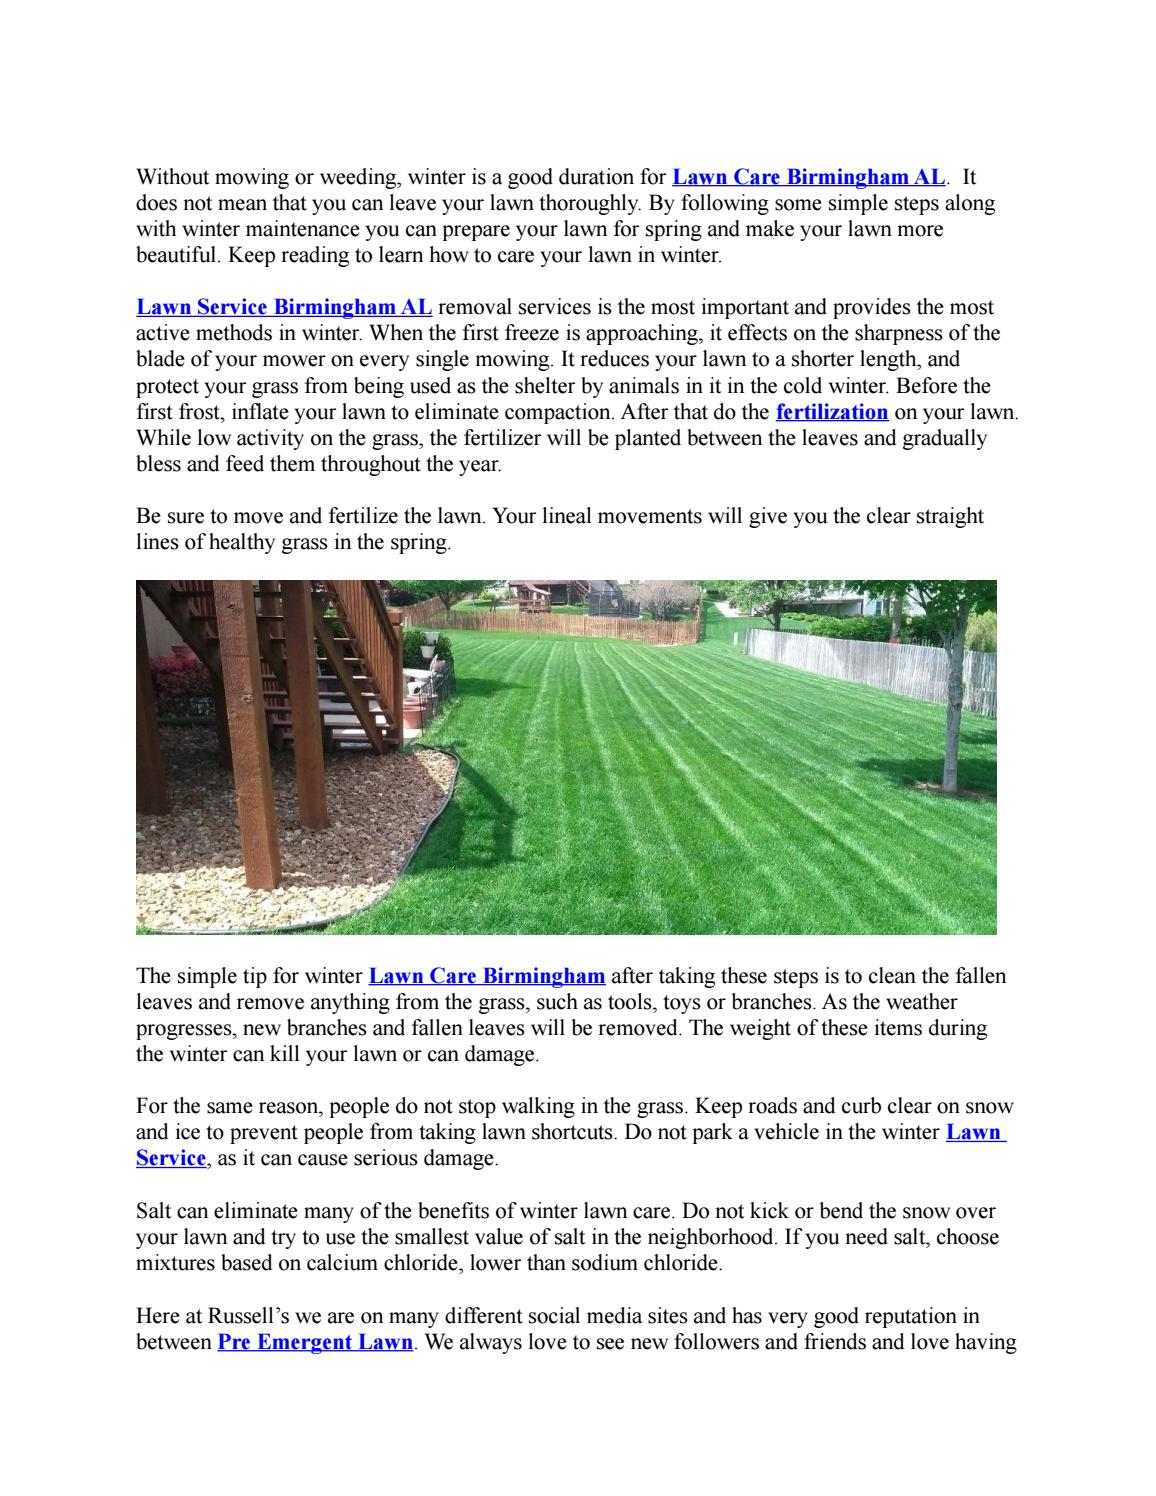 Lawn Care In Winter Tips On Caring